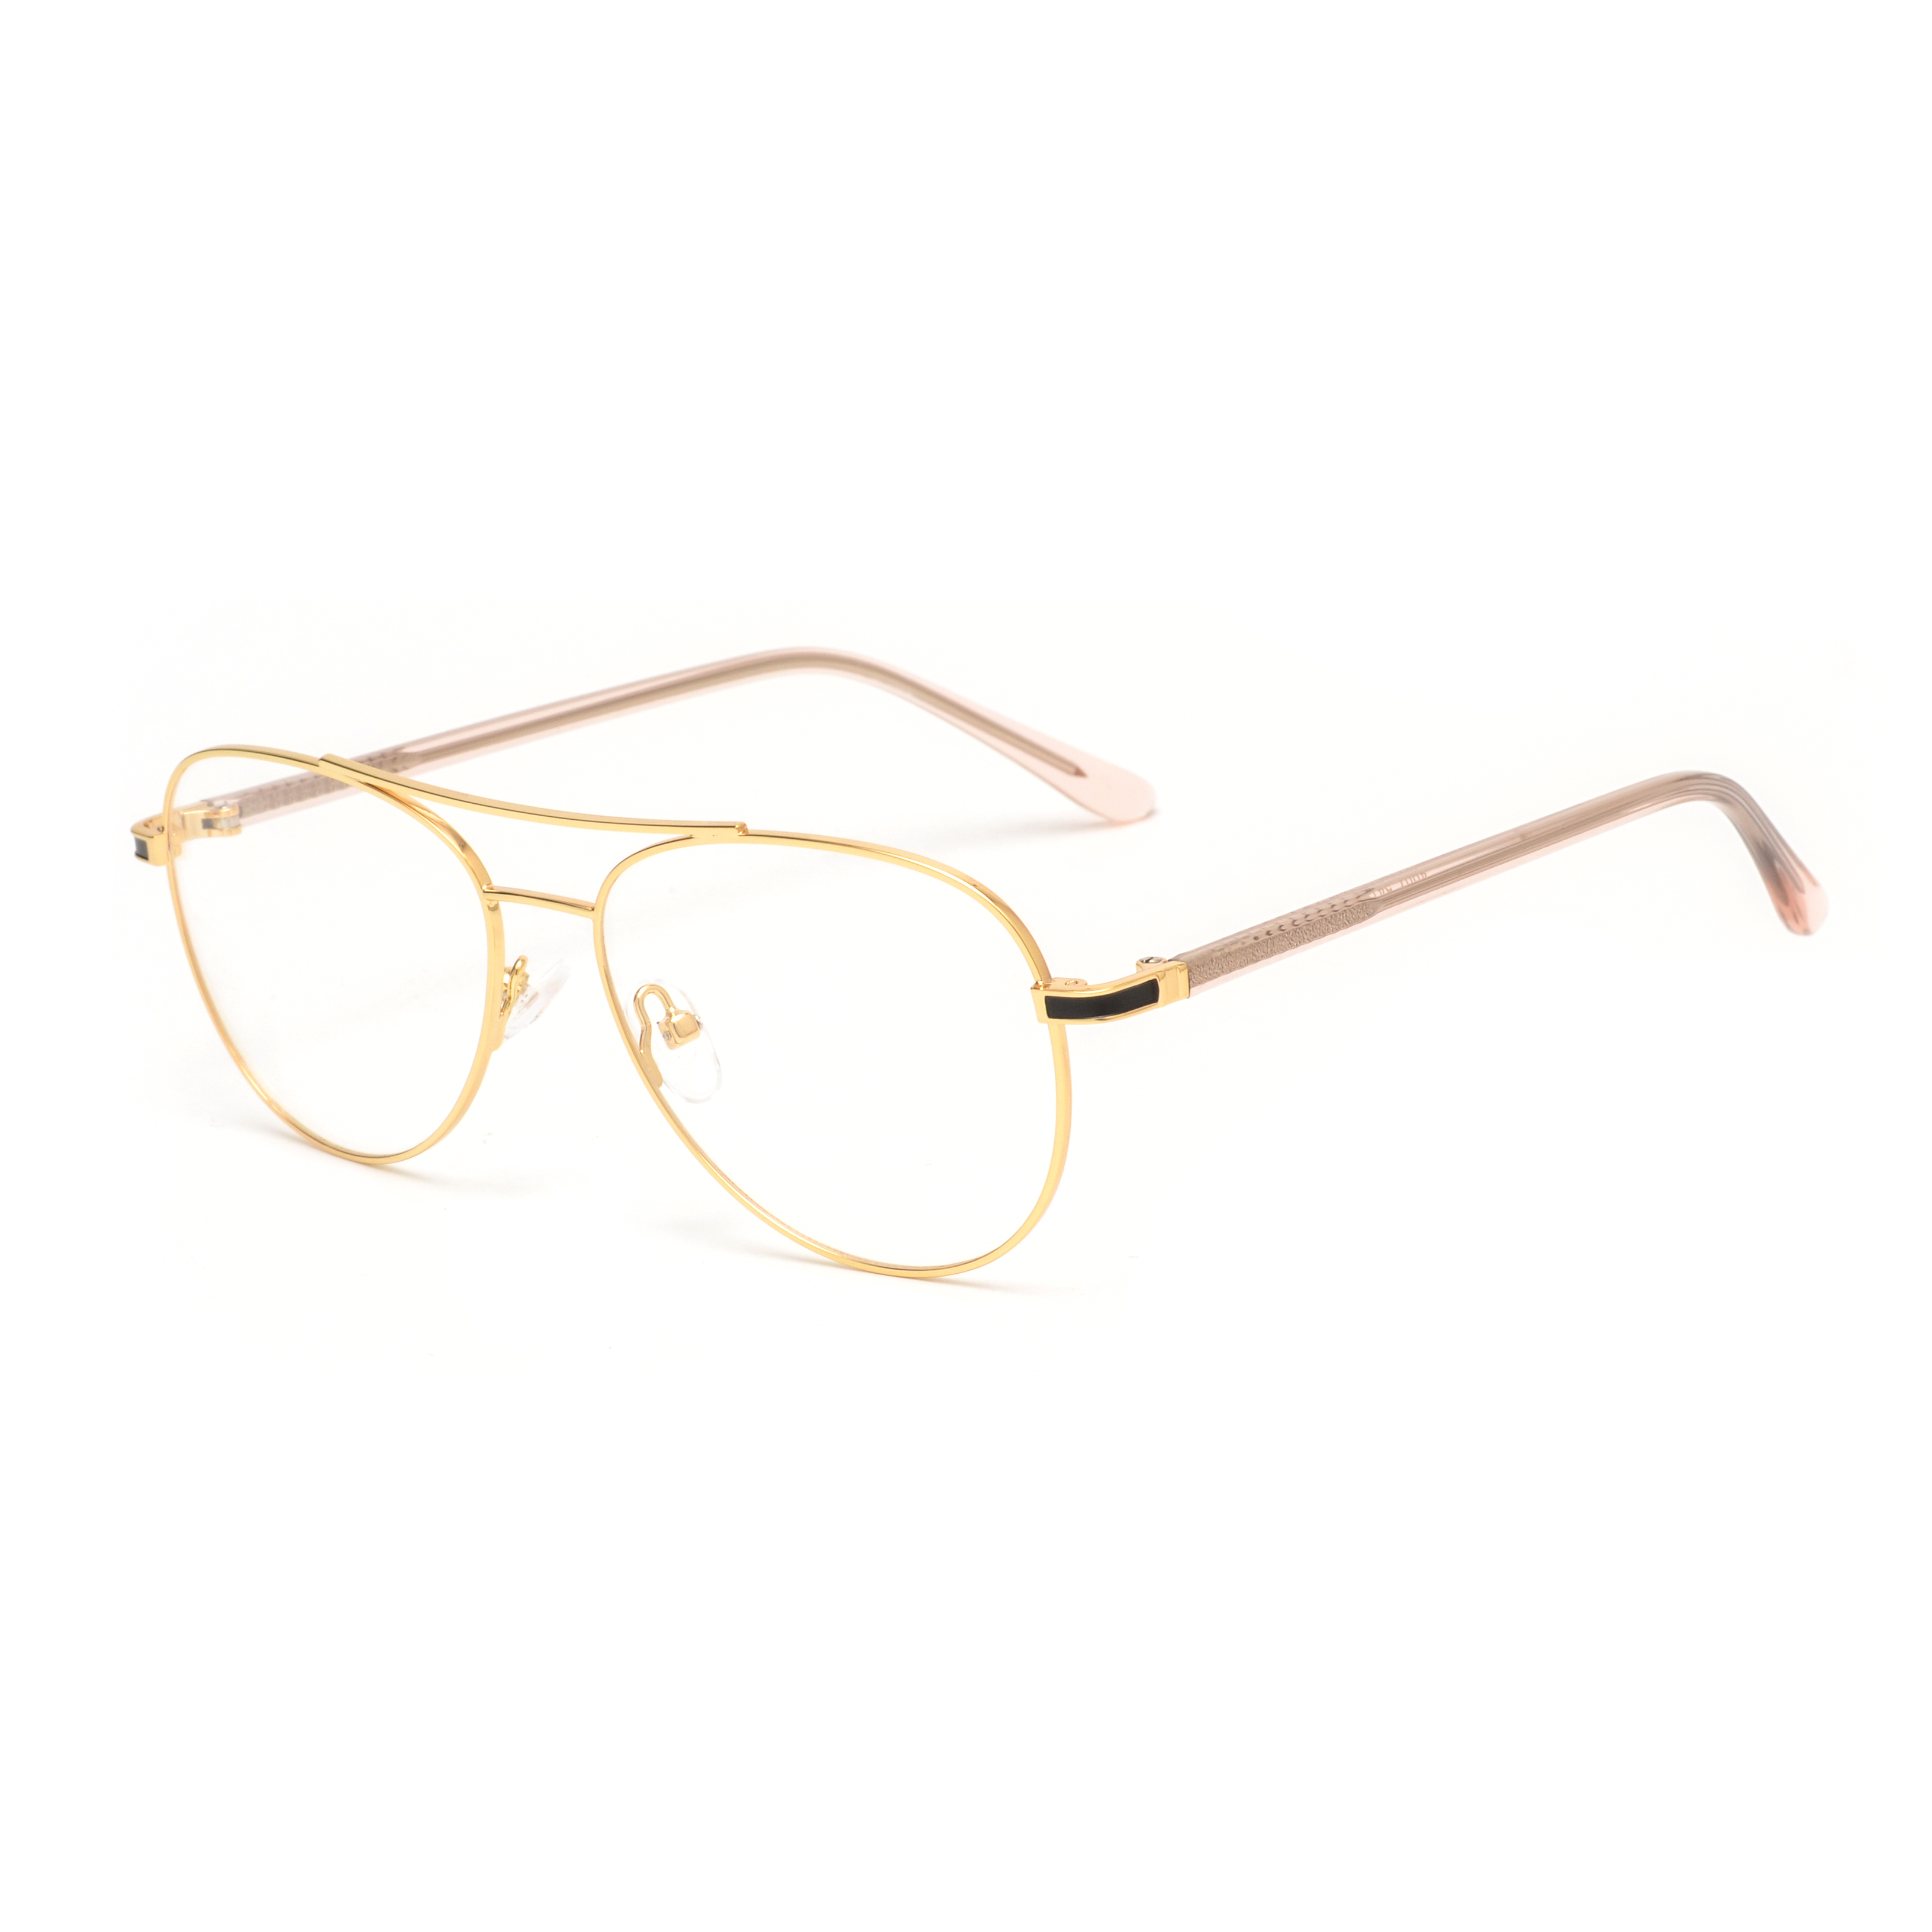 New arrival models metal high quality stainless steel fashion round stock optical eyeglasses frames